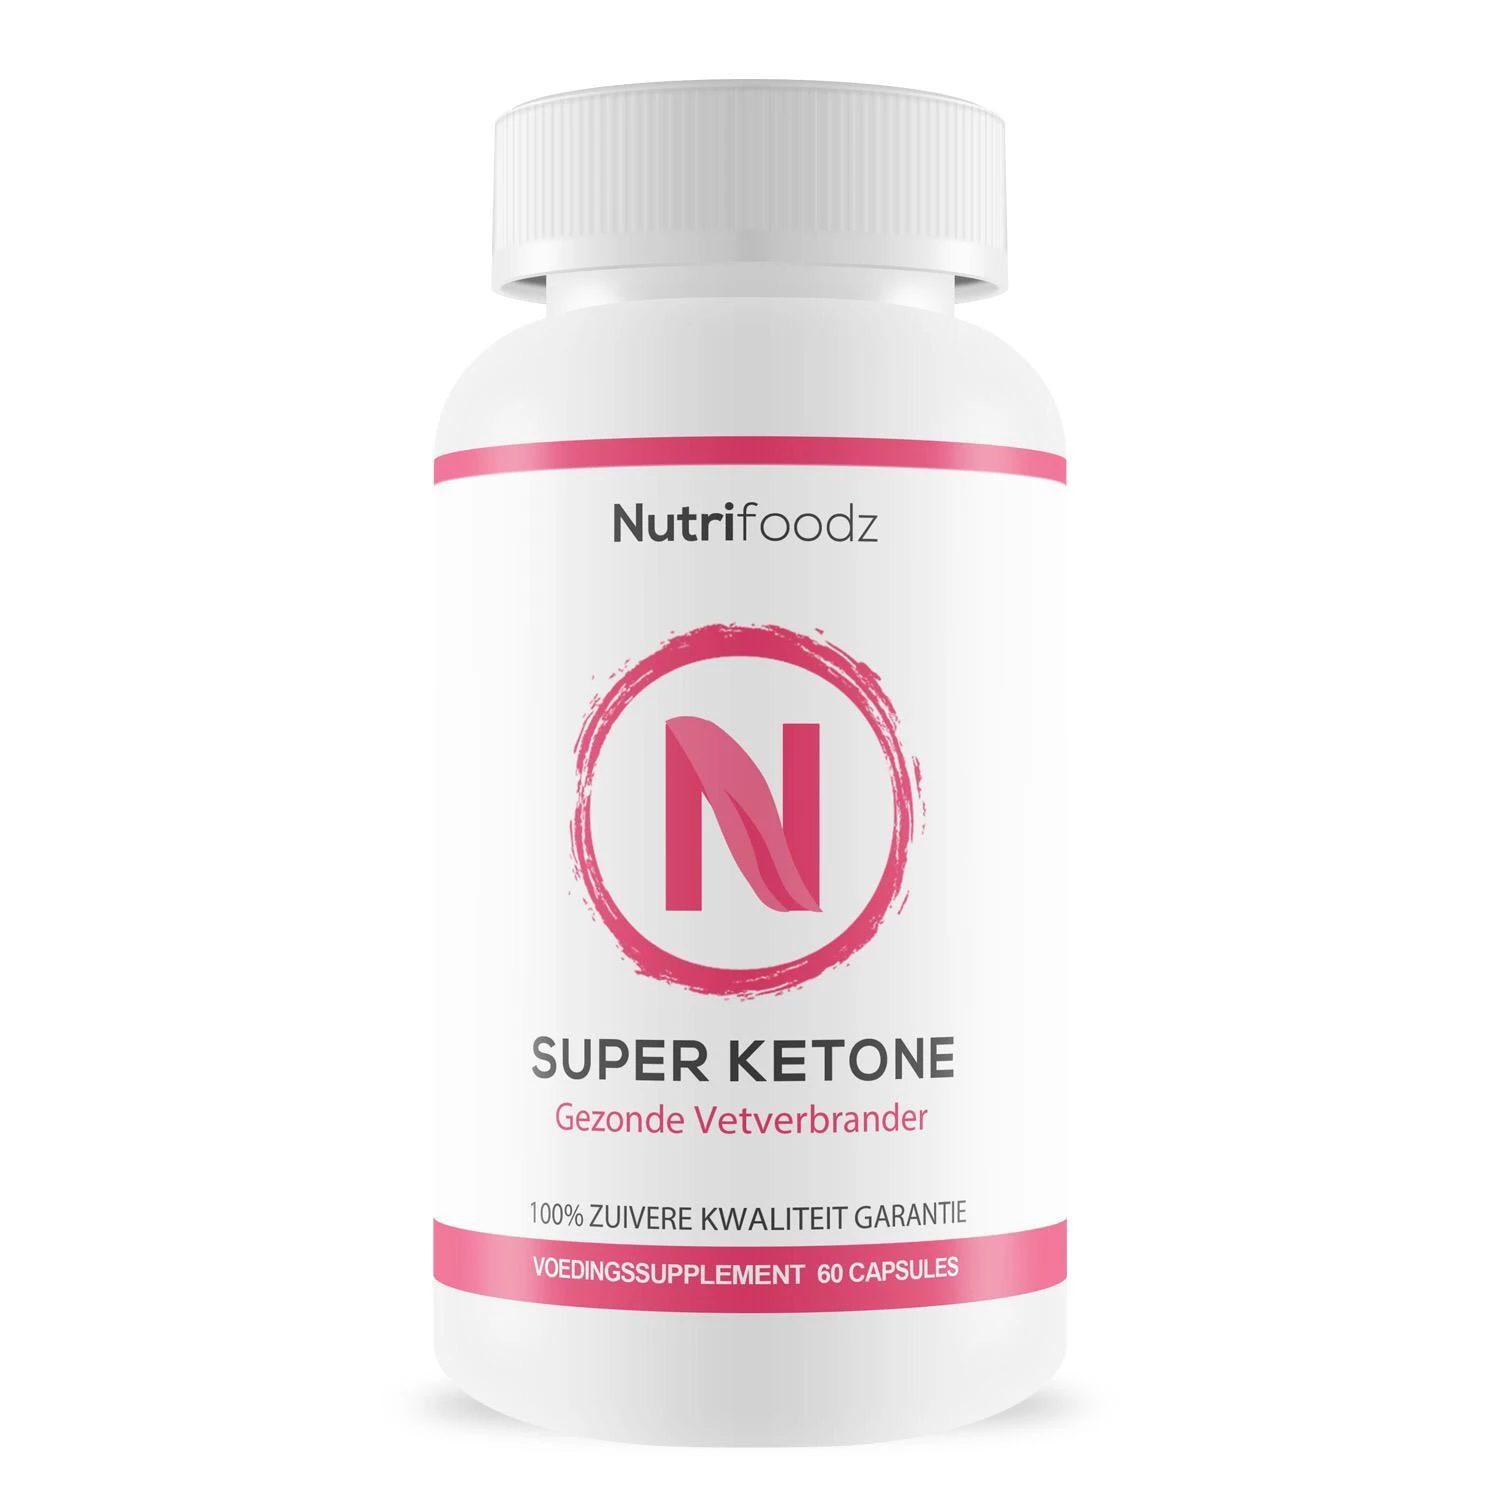 SUPER KETONE 3 pack (15% korting) nutrition